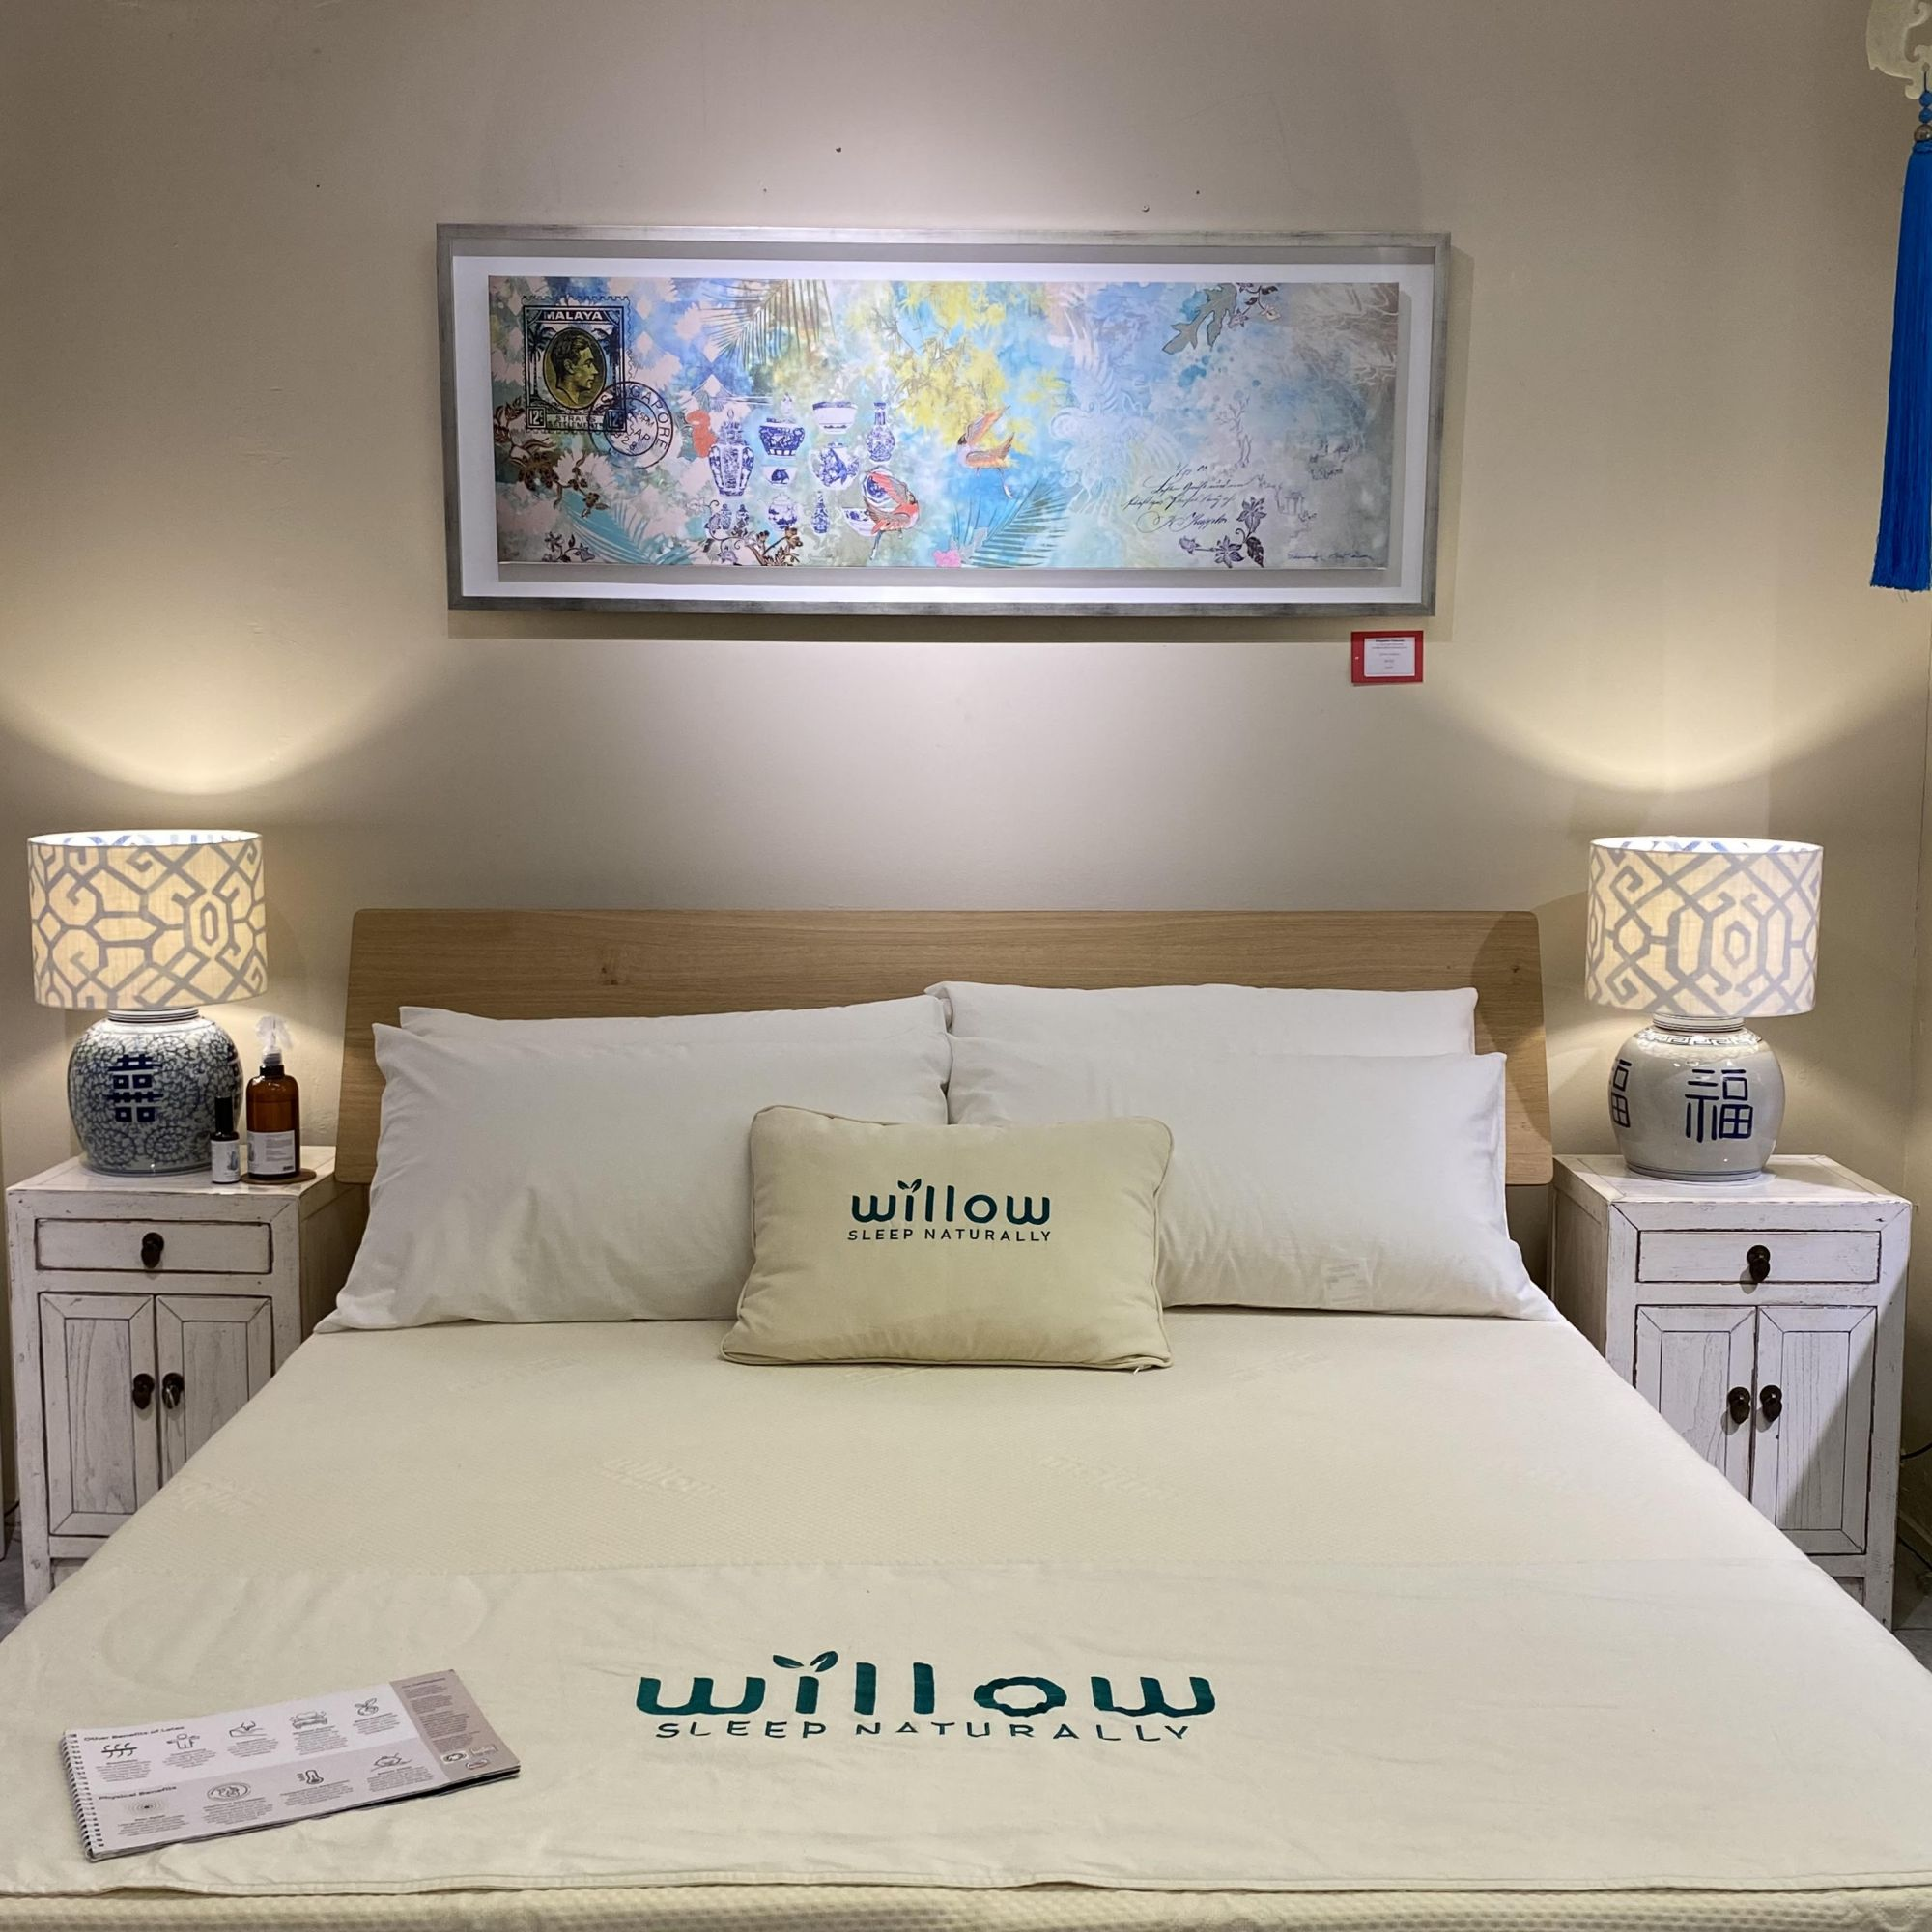 Why Willow Mattress is a Luxurious Yet Eco-Friendly Option for Your Bedroom